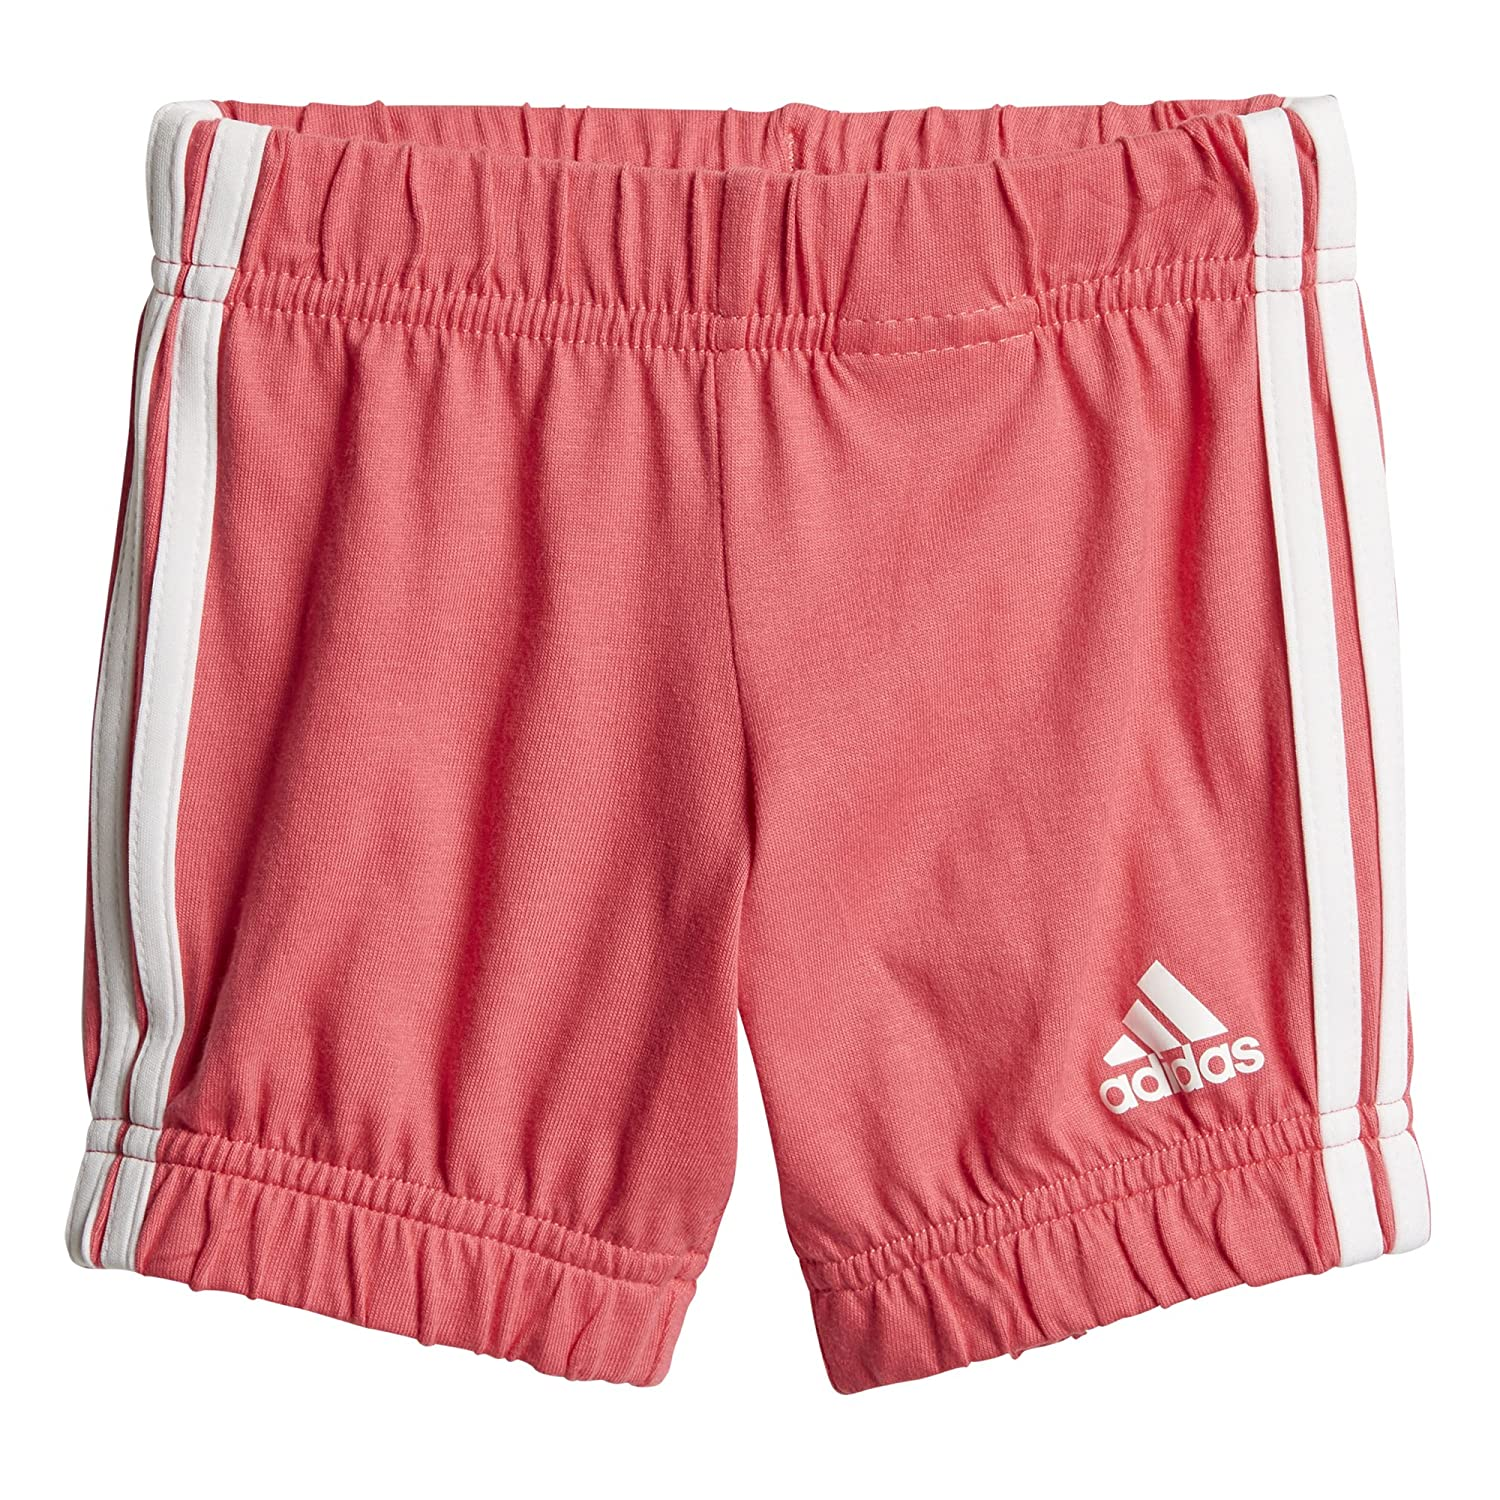 adidas Infant Girls Summer Easy Set, White/Chalk Pink, 3T adidas Canada Limited Parent Code - SPORTS CF7413